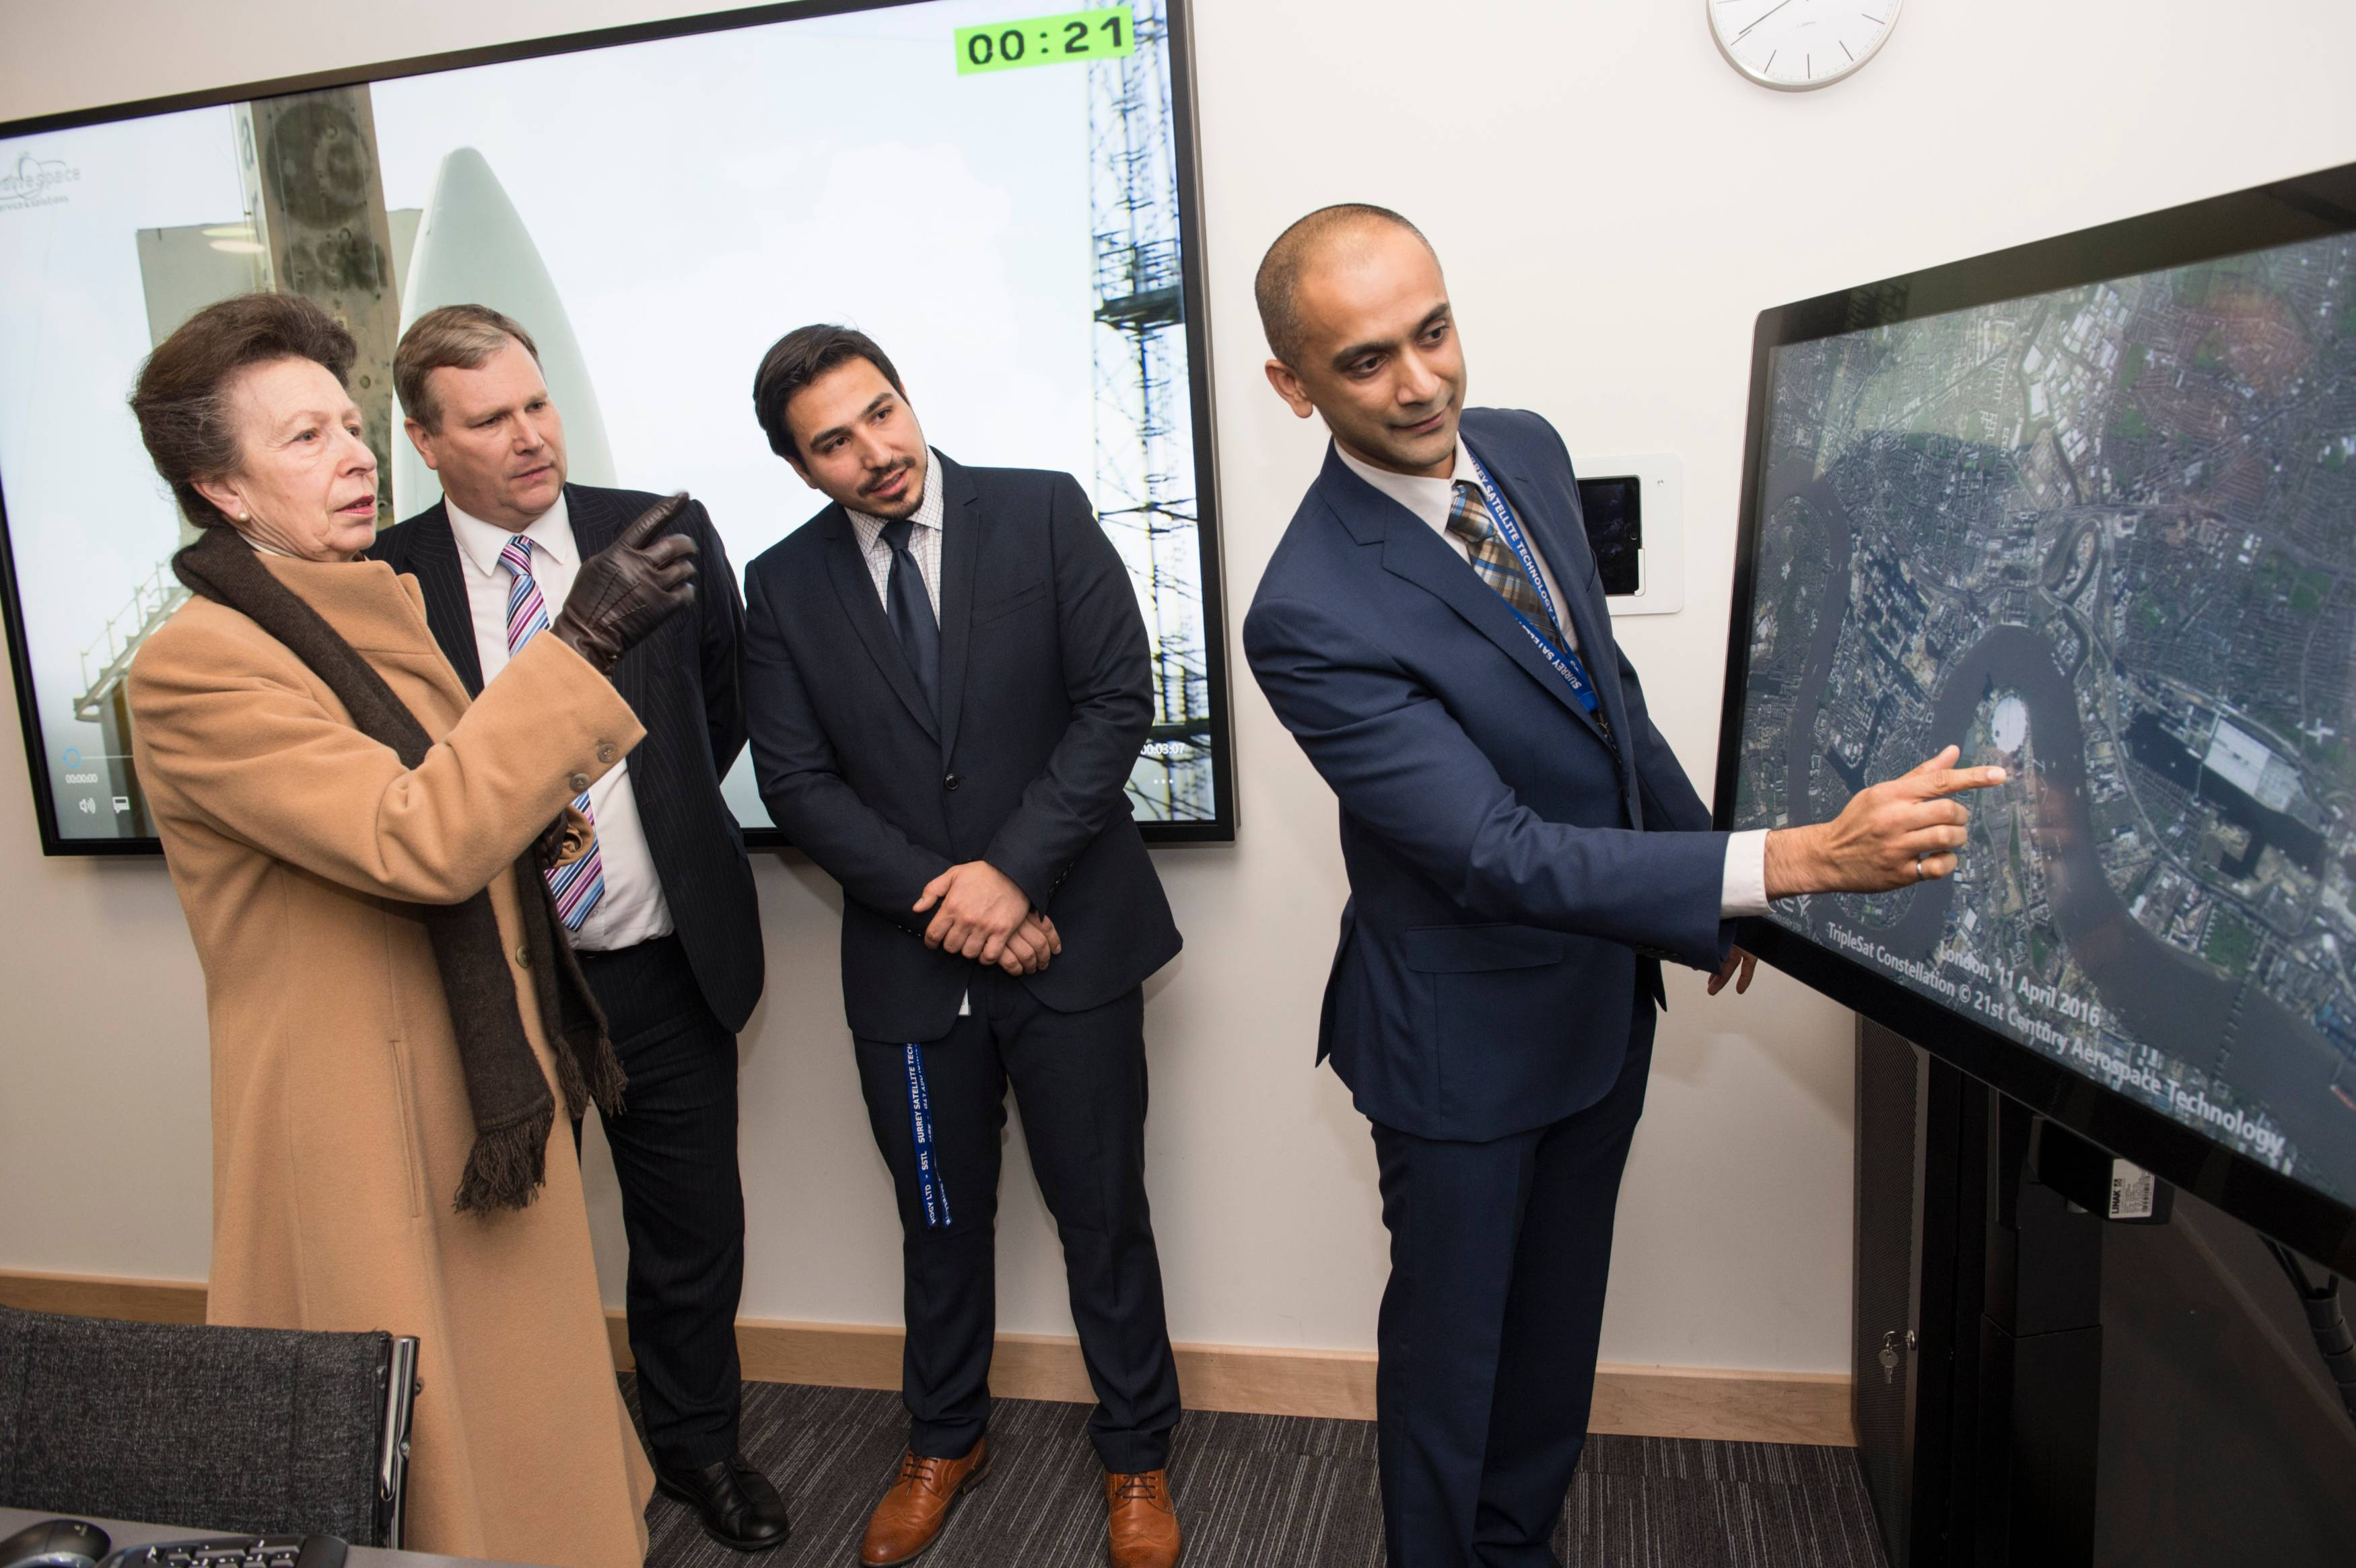 Nimal Navarathinam, Systems Engineer, takes Her Royal Highness on a guided tour of London from space using an interactive image of London taken by one of SSTL's satellites